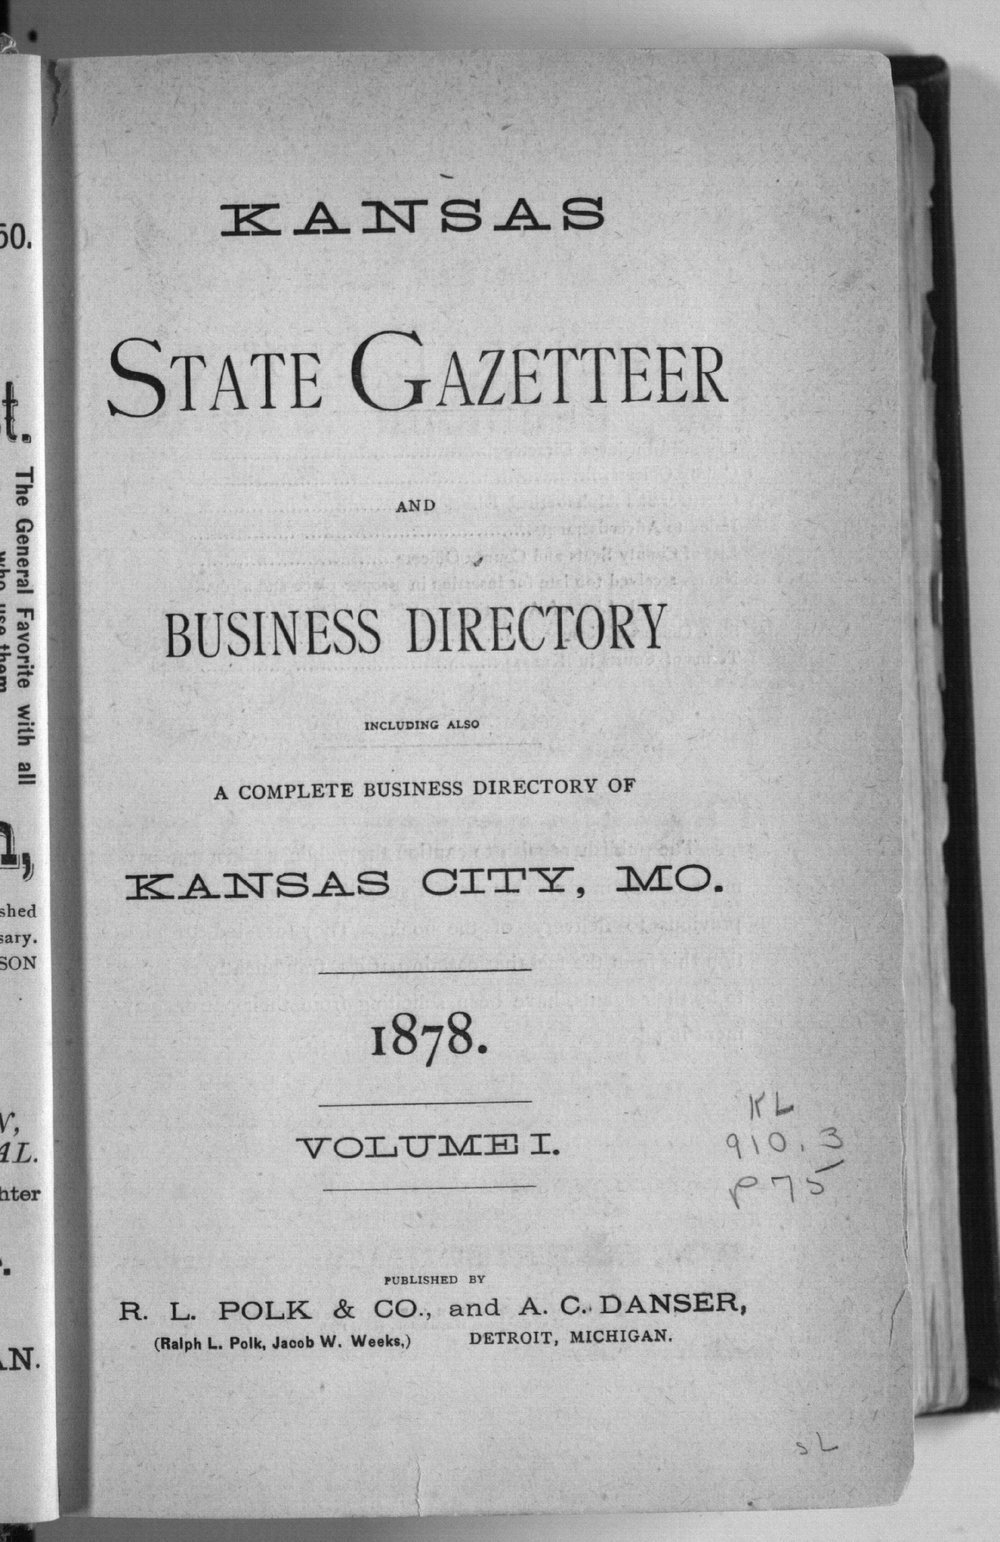 Kansas state gazetteer and business directory - Title Page